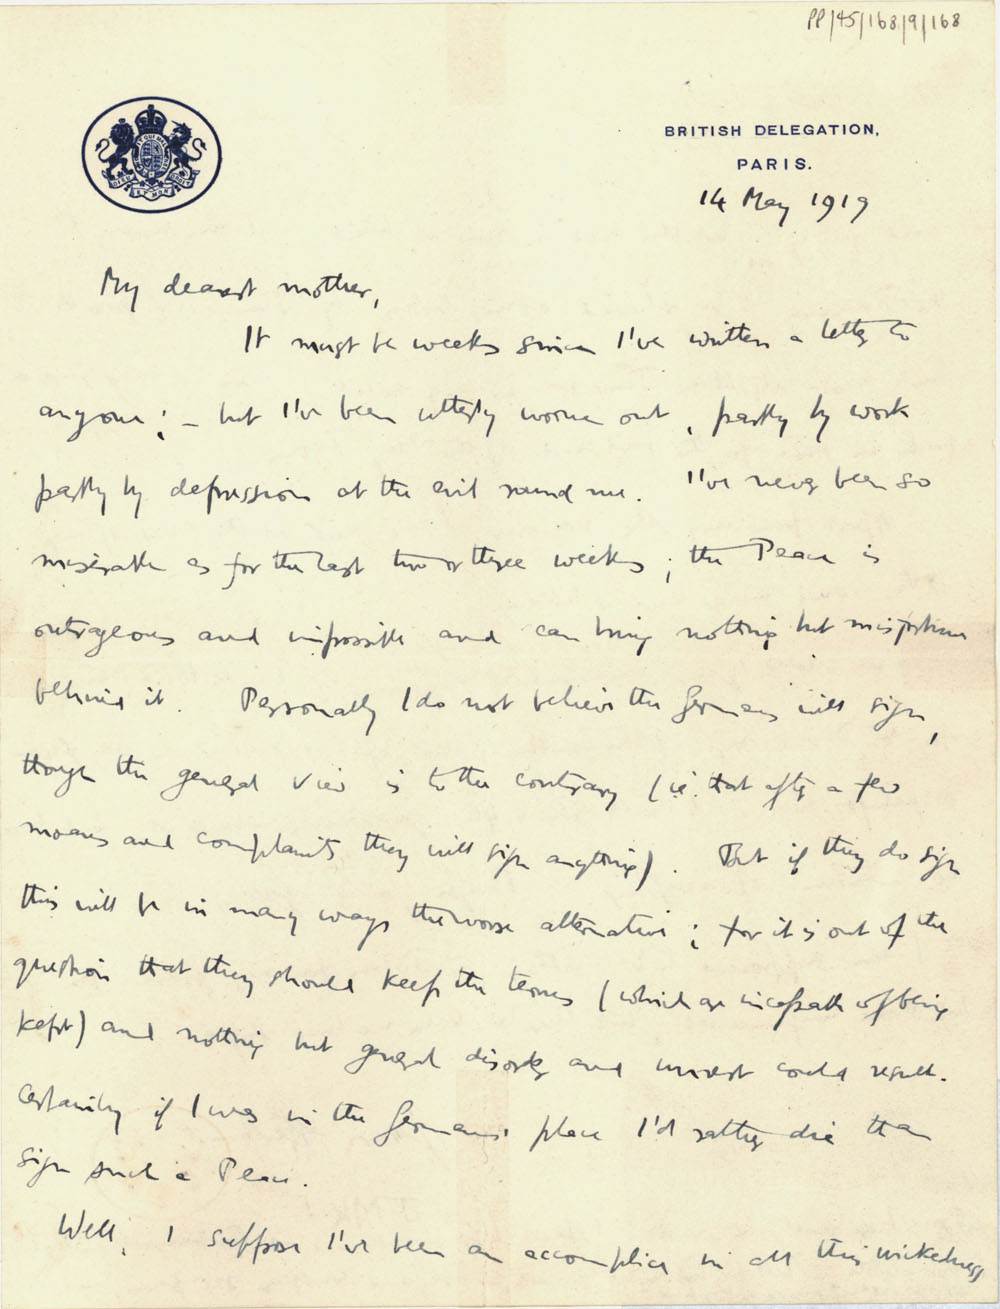 First page of a letter from John Maynard Keynes to Florence Ada Keynes, 14 May 1919 (JMK/PP/45/168/9/168).